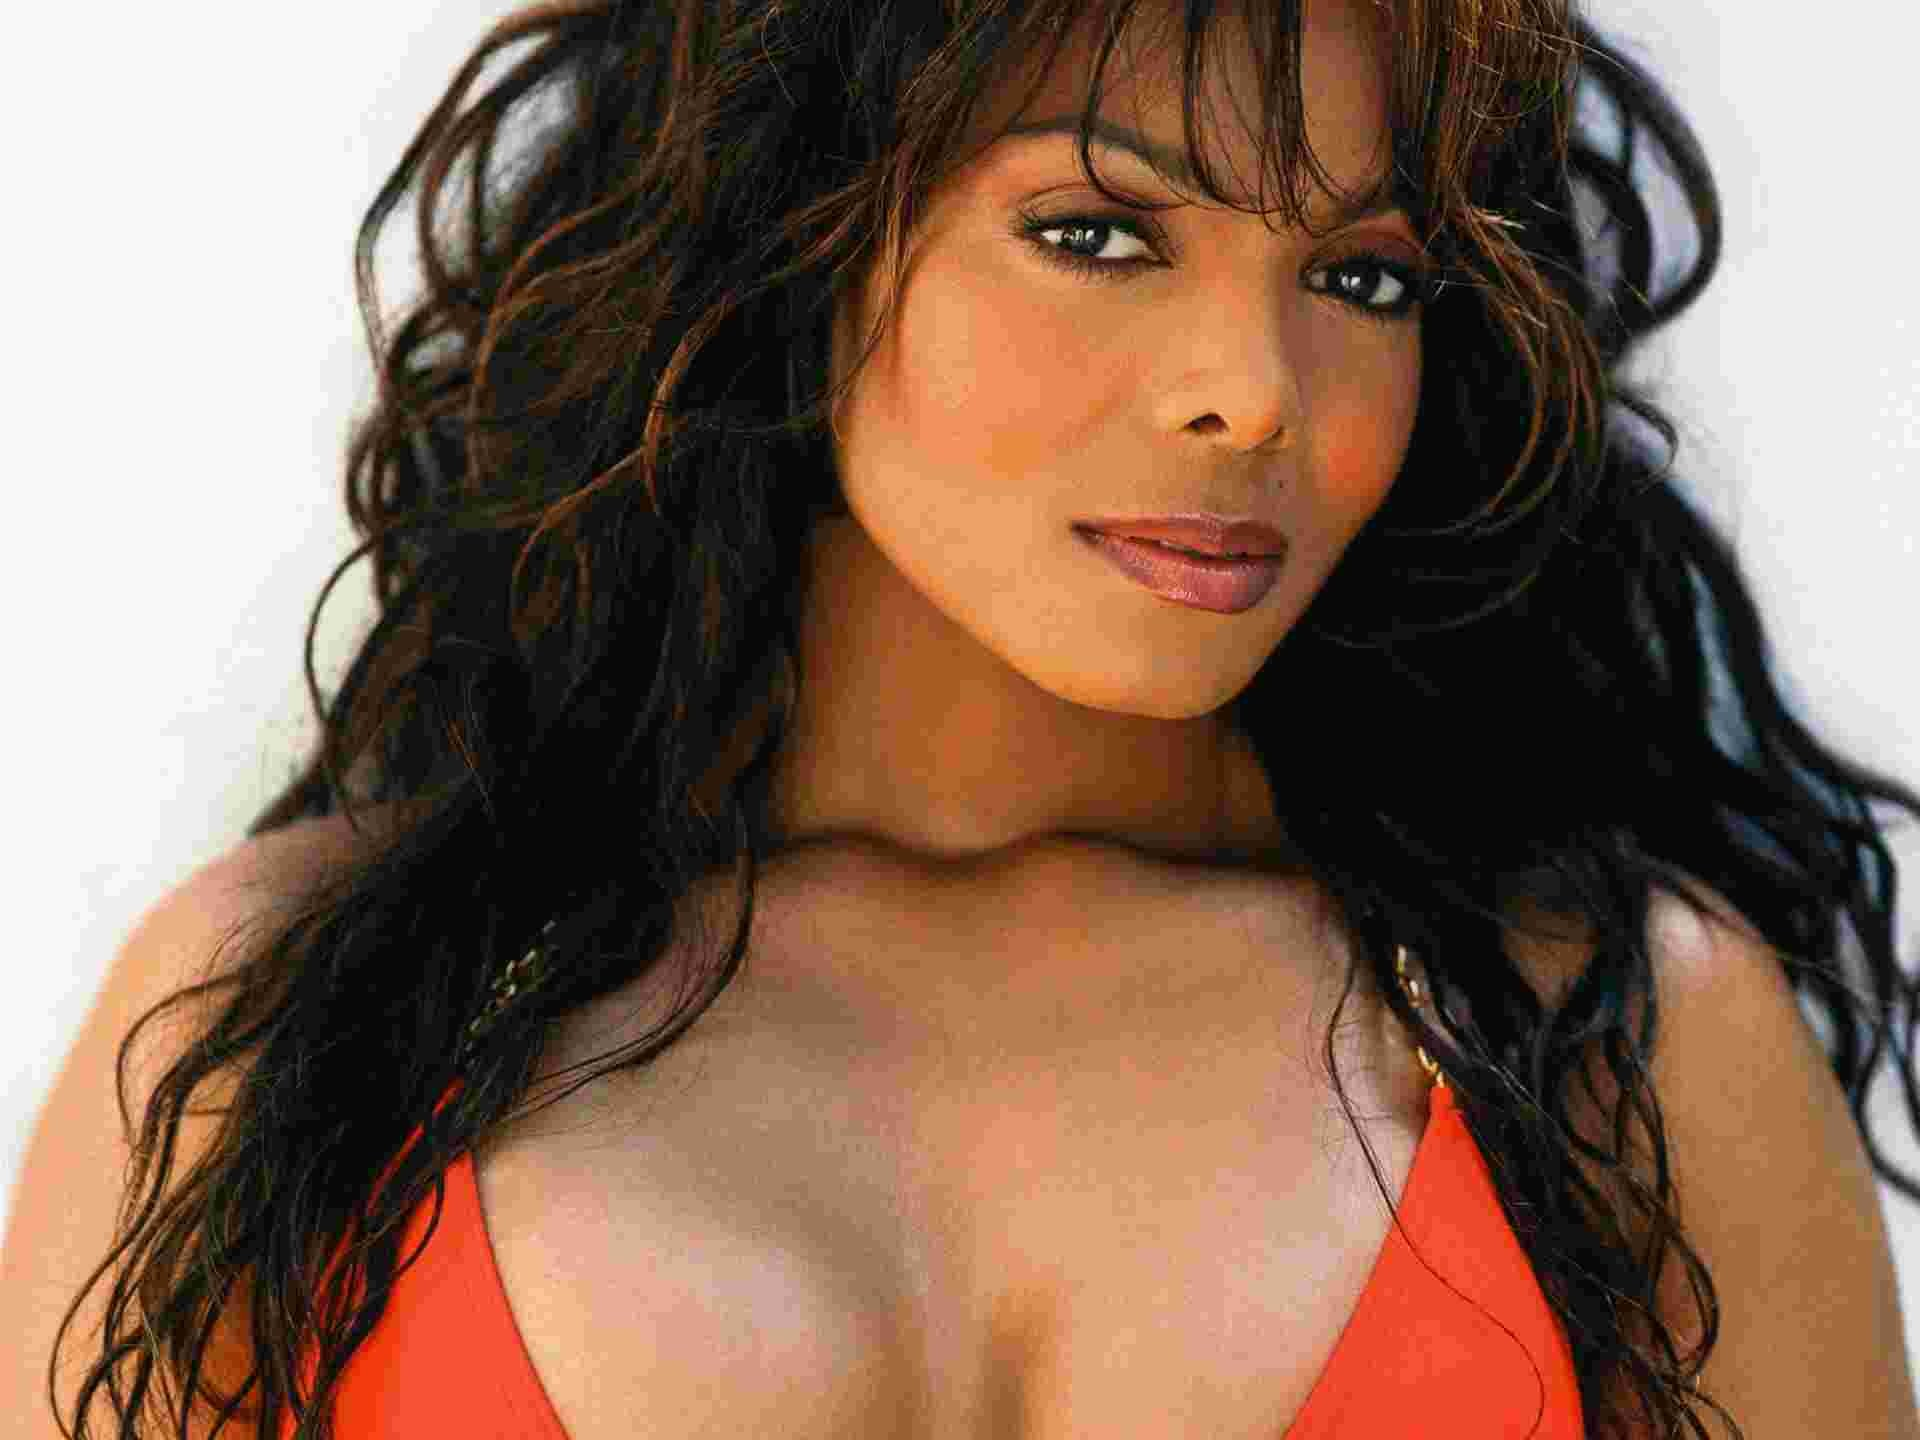 1920x1440 Another Wallpaper of Janet Jackson